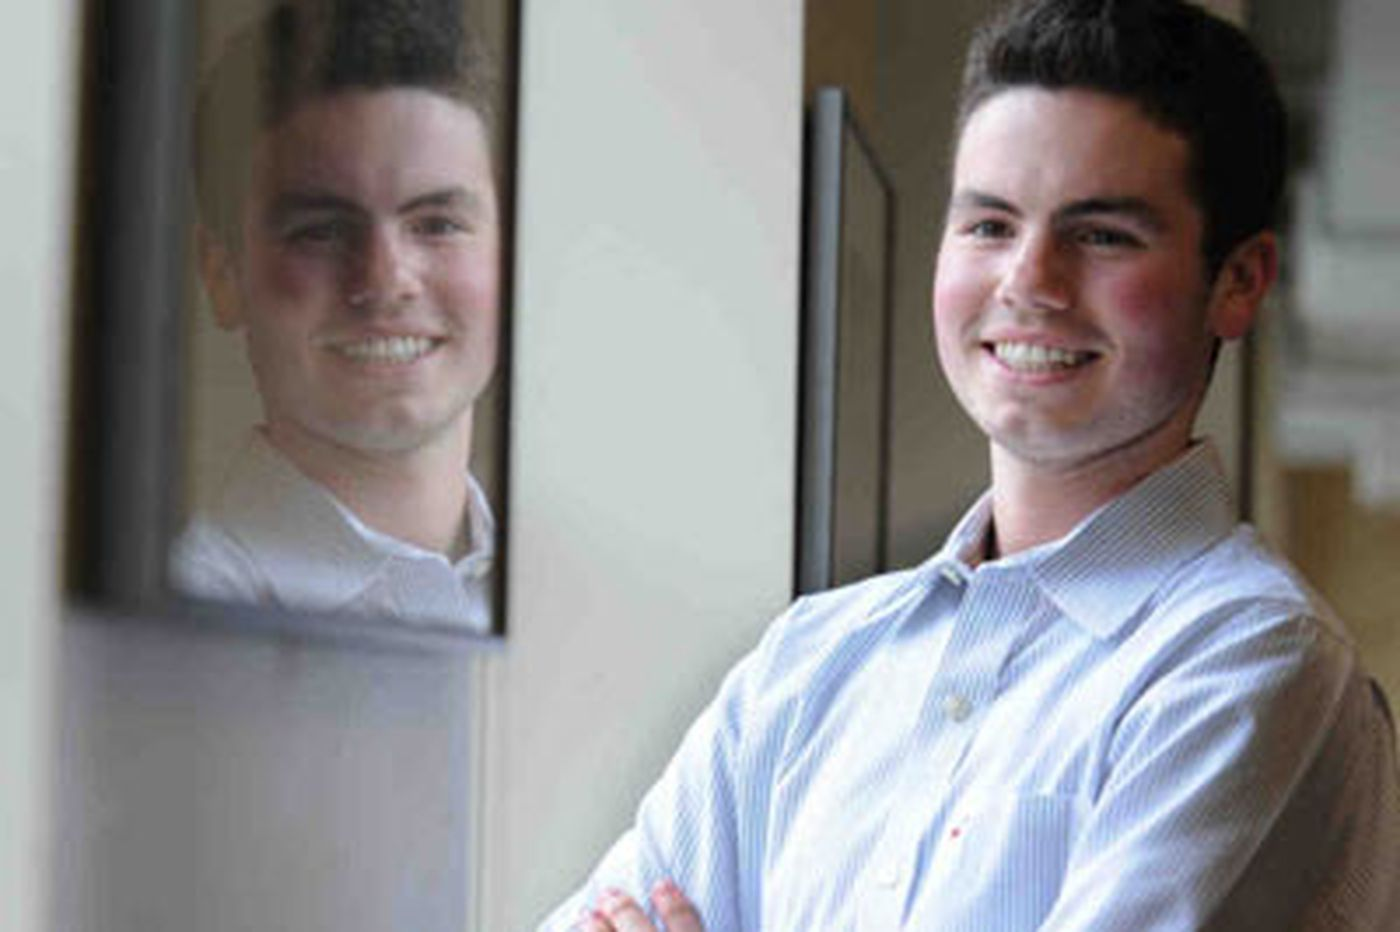 Daniel Rubin: Delaware Valley College student talks of being tormented as gay